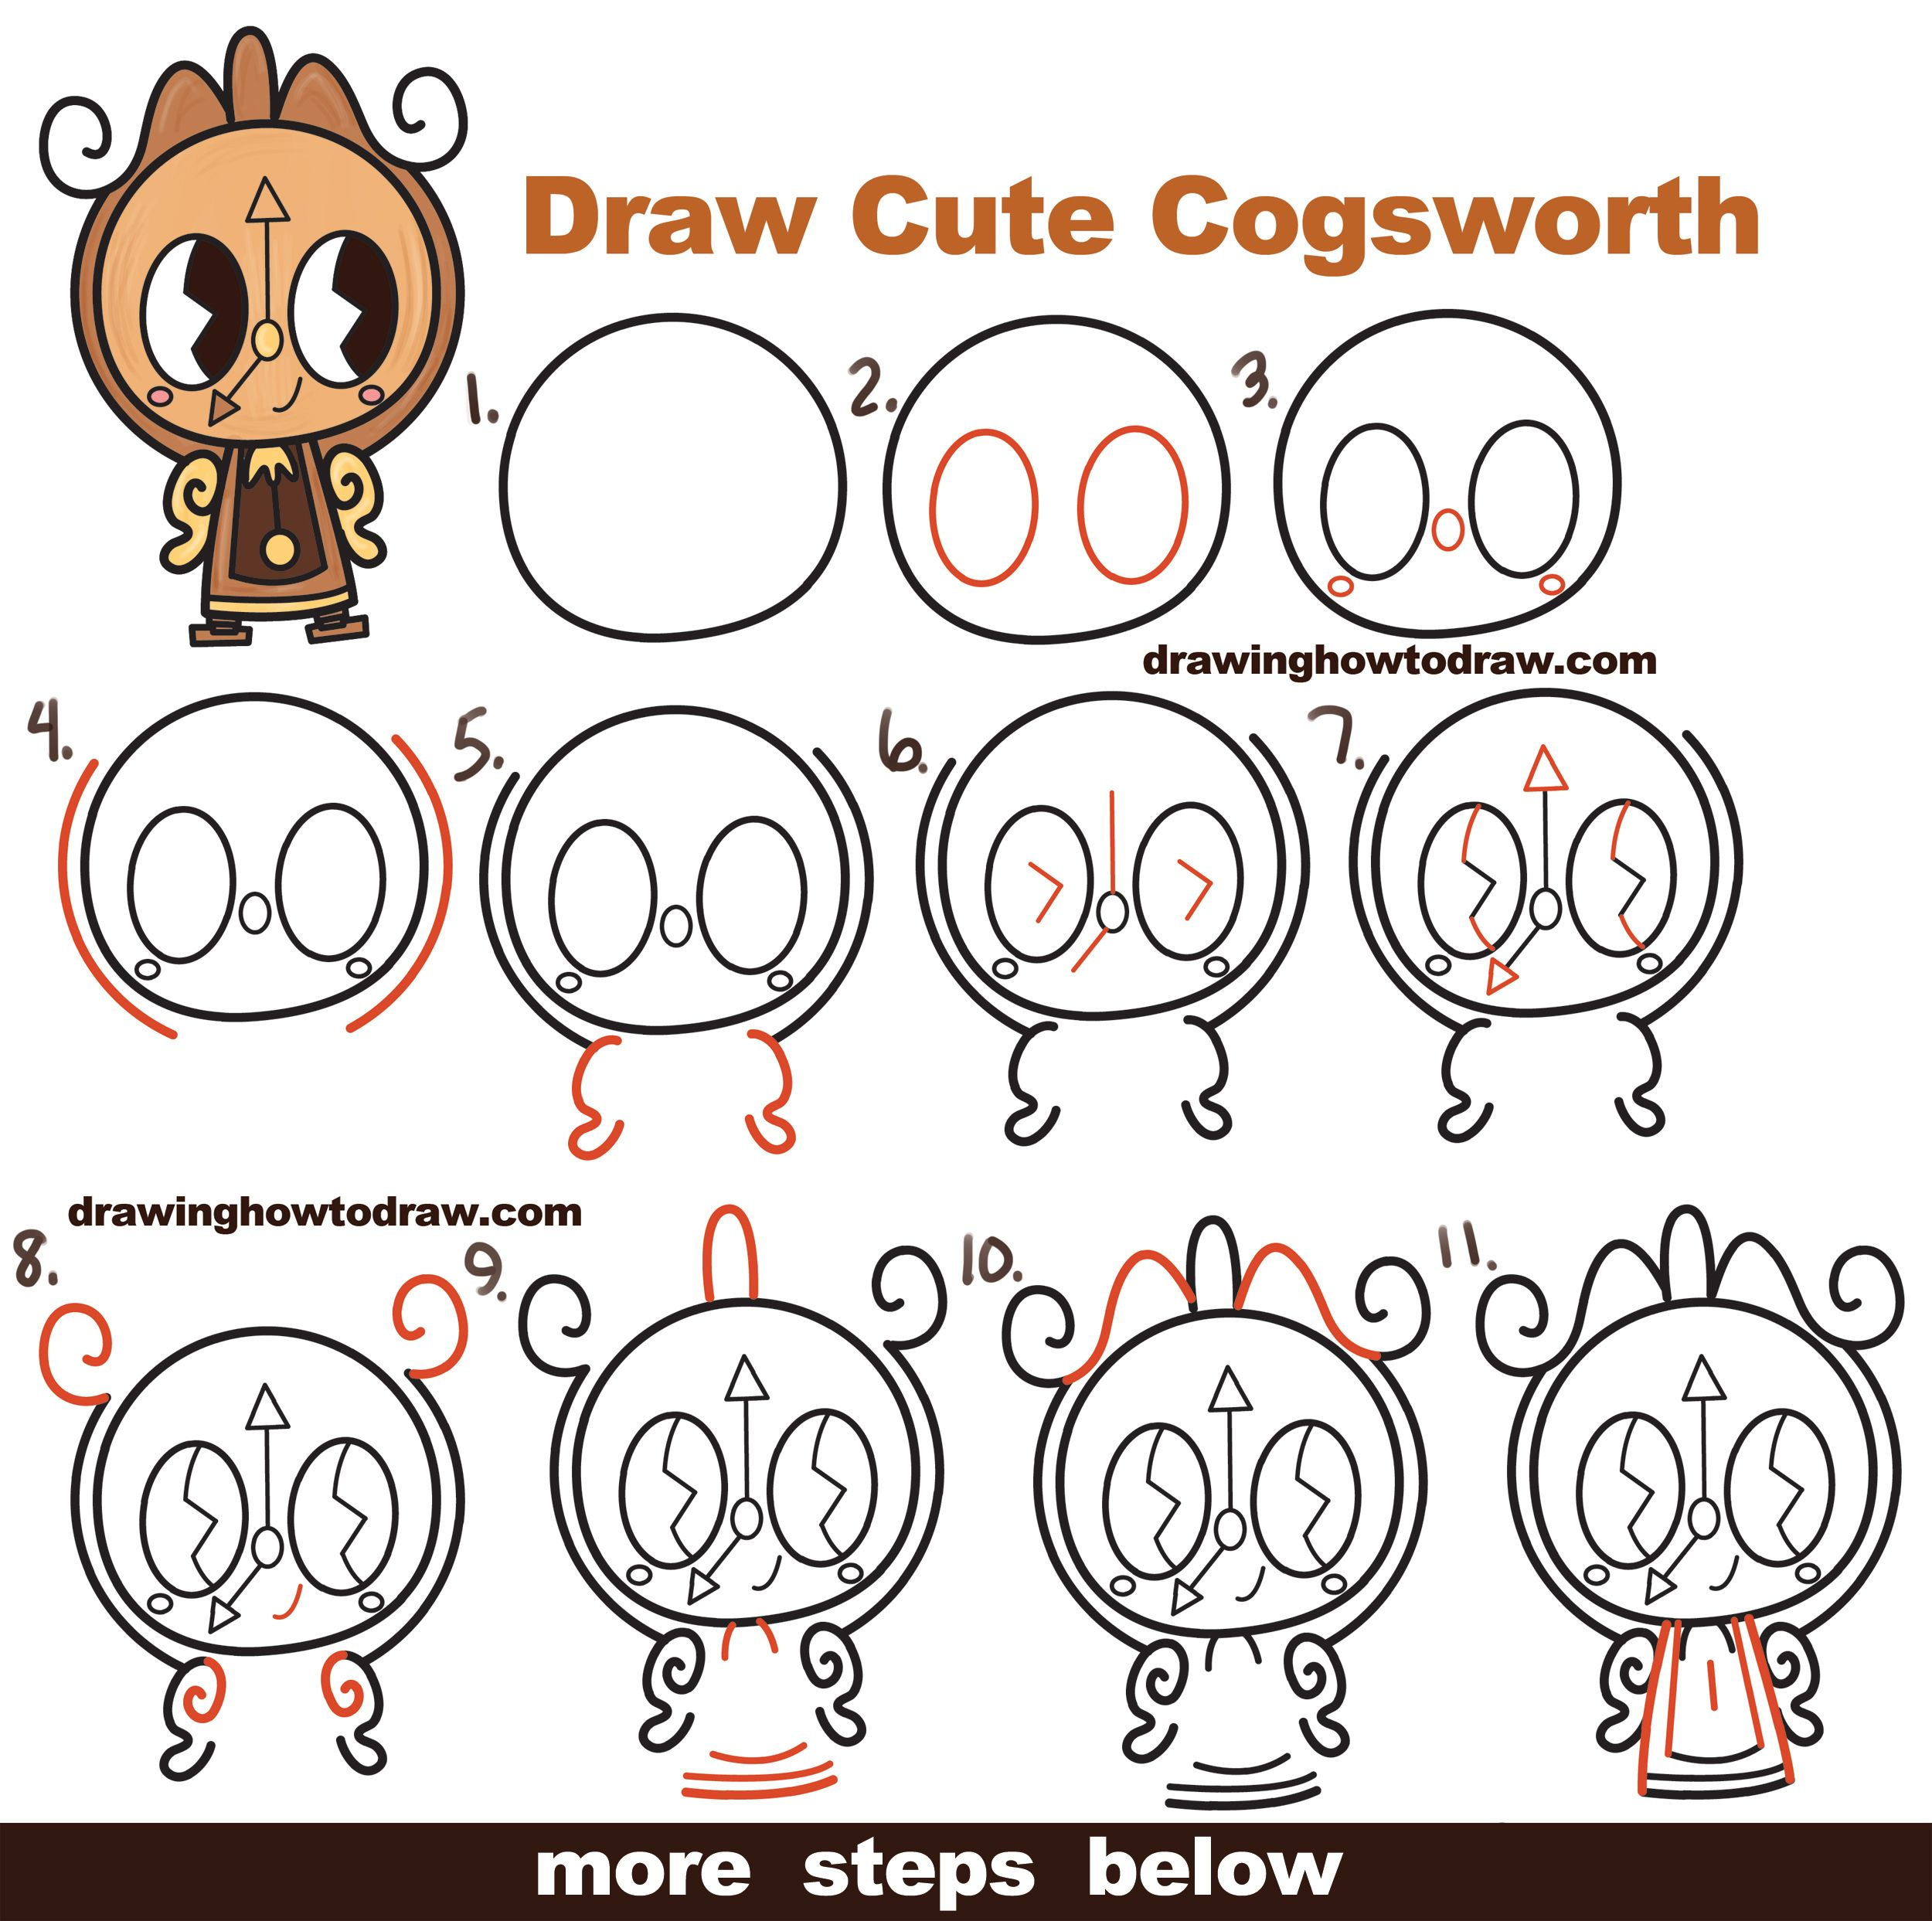 How To Draw Cute Kawaii Chibi Cogsworth The Clock From